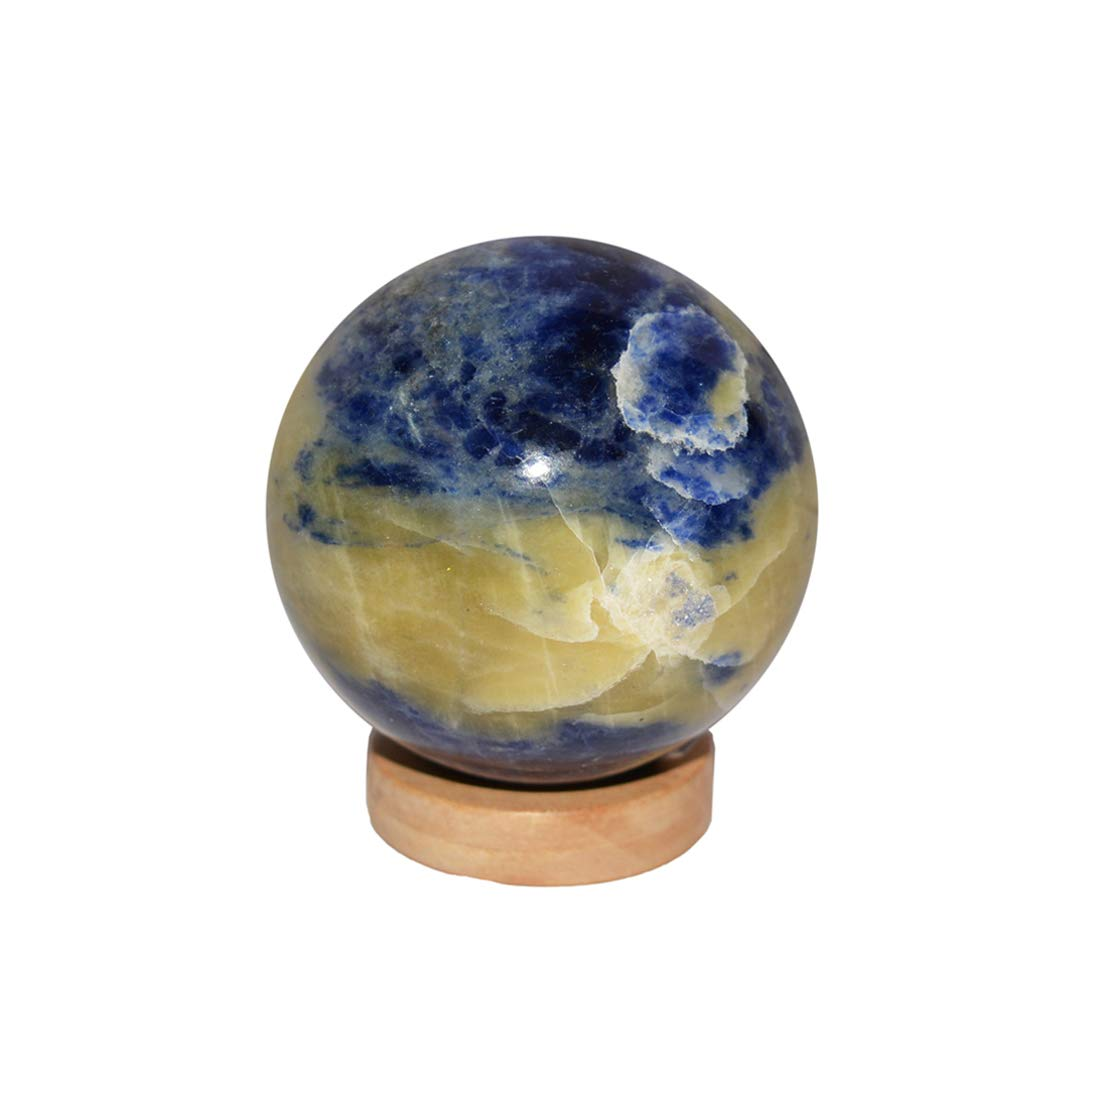 Lace Agate Ball/Sphere for Reiki Healing  Stone Ball - BohoEntice